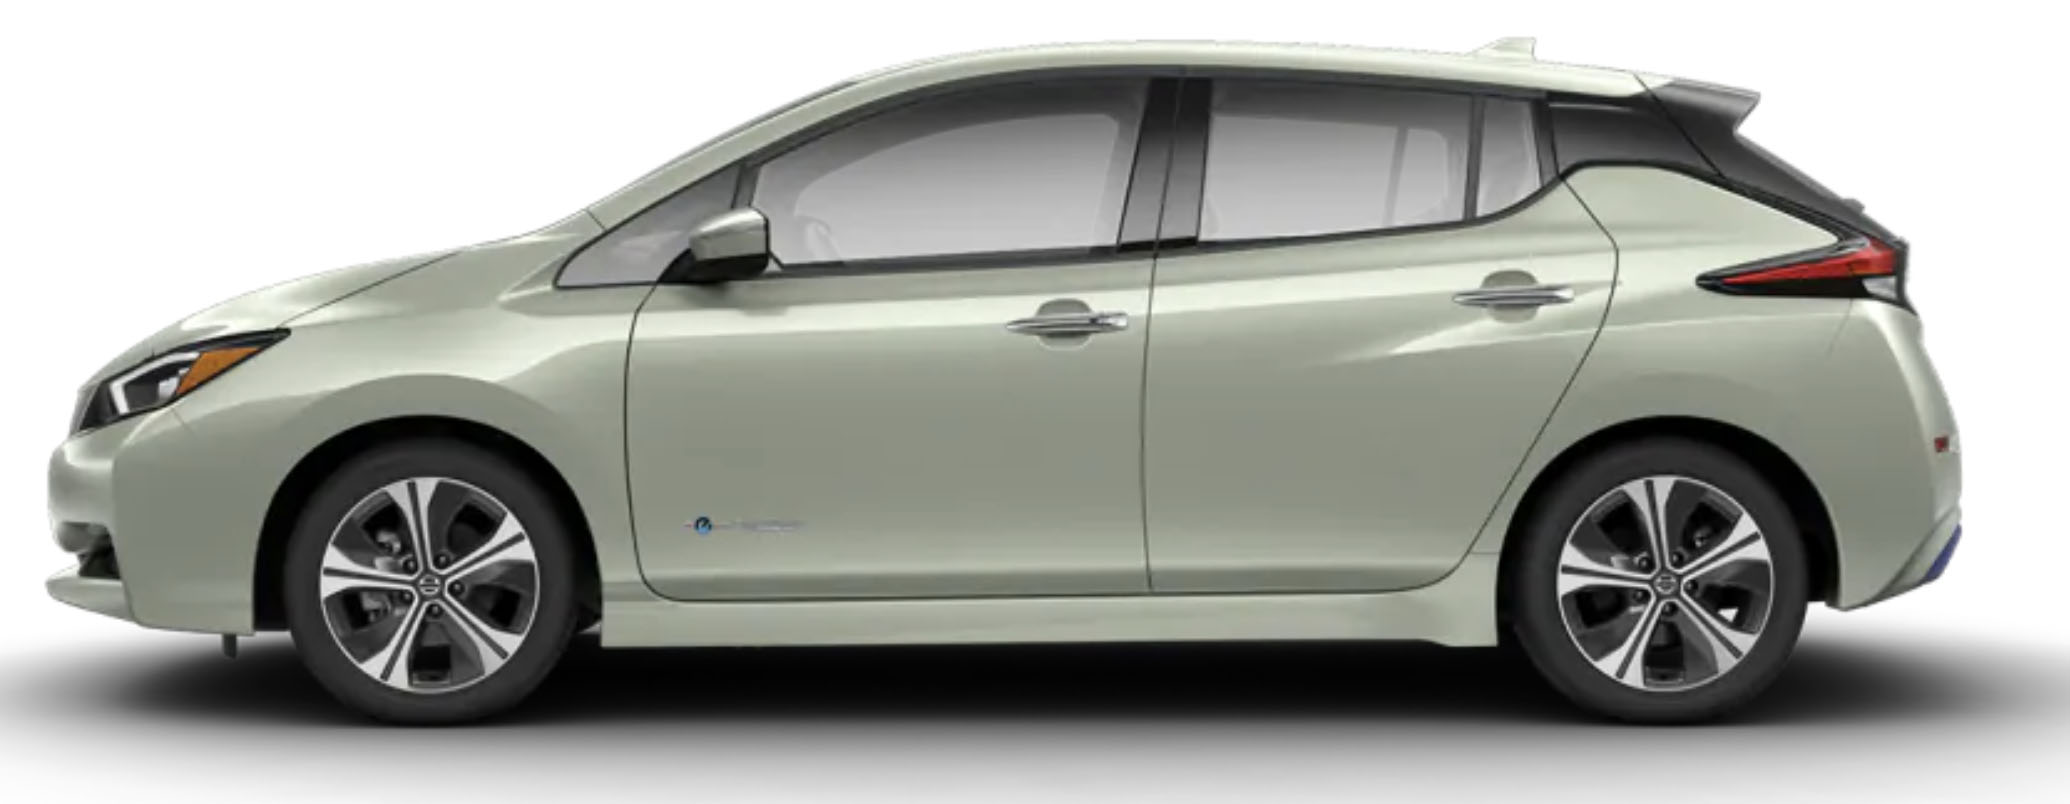 Side-view of 2019 Nissan Leaf electric car in jade frost metallic finish against a white background.